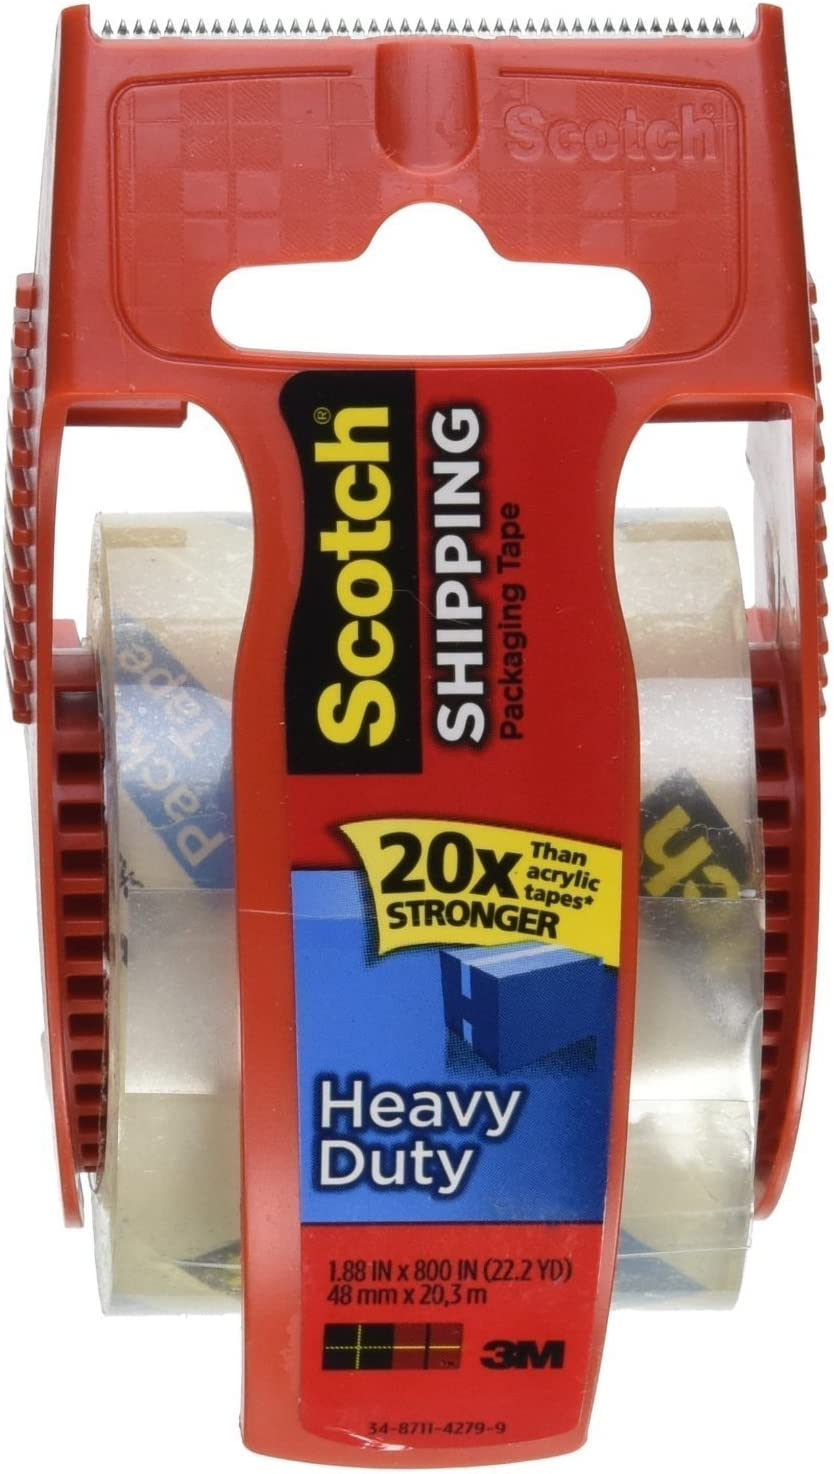 Clear 2 x 800 Scotch Heavy Duty Shipping Packaging Tape 1, Clear 3 Tapes